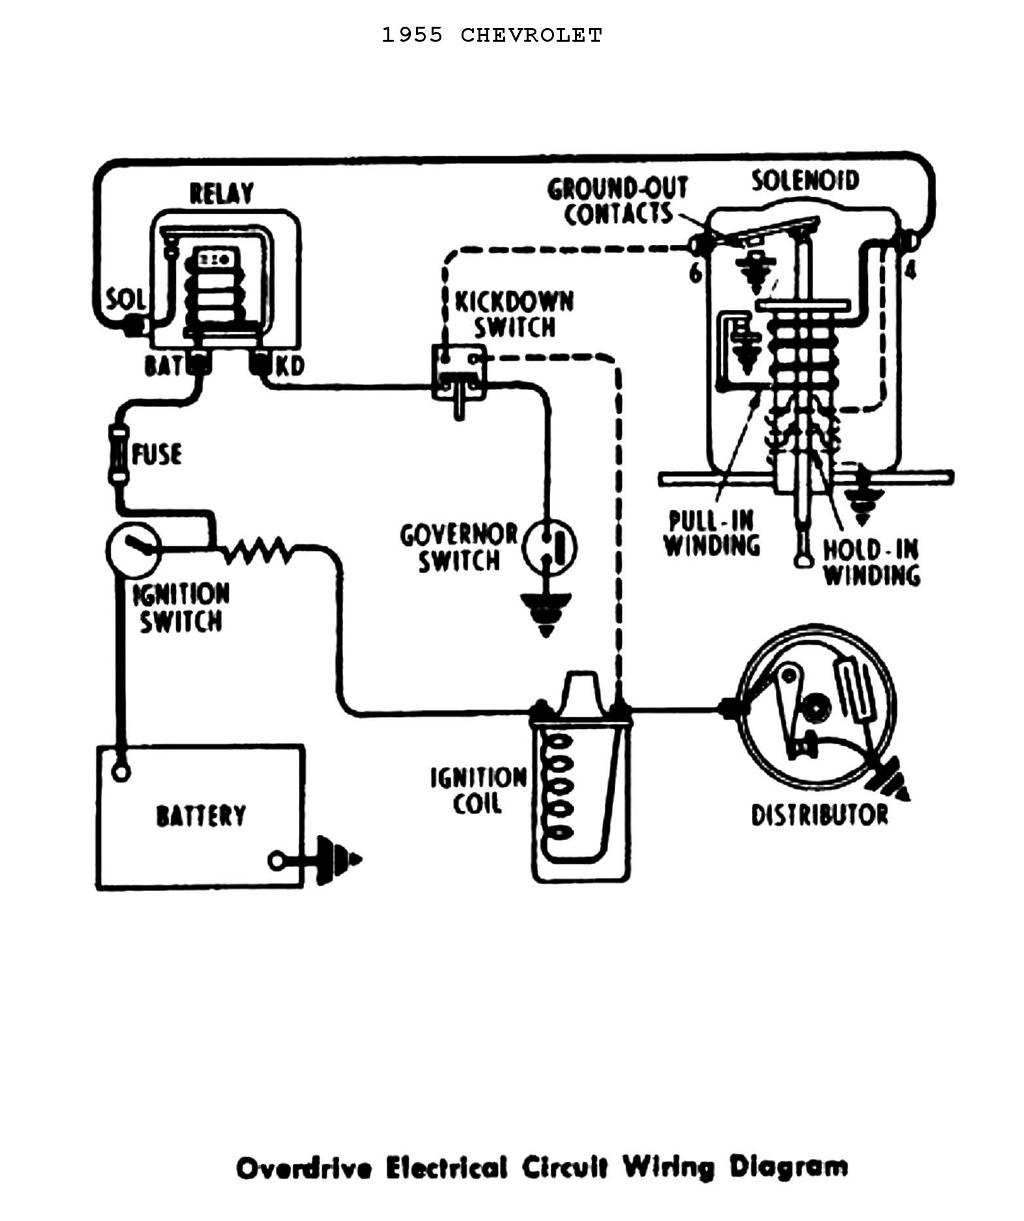 wiring diagram for 89 chevy van